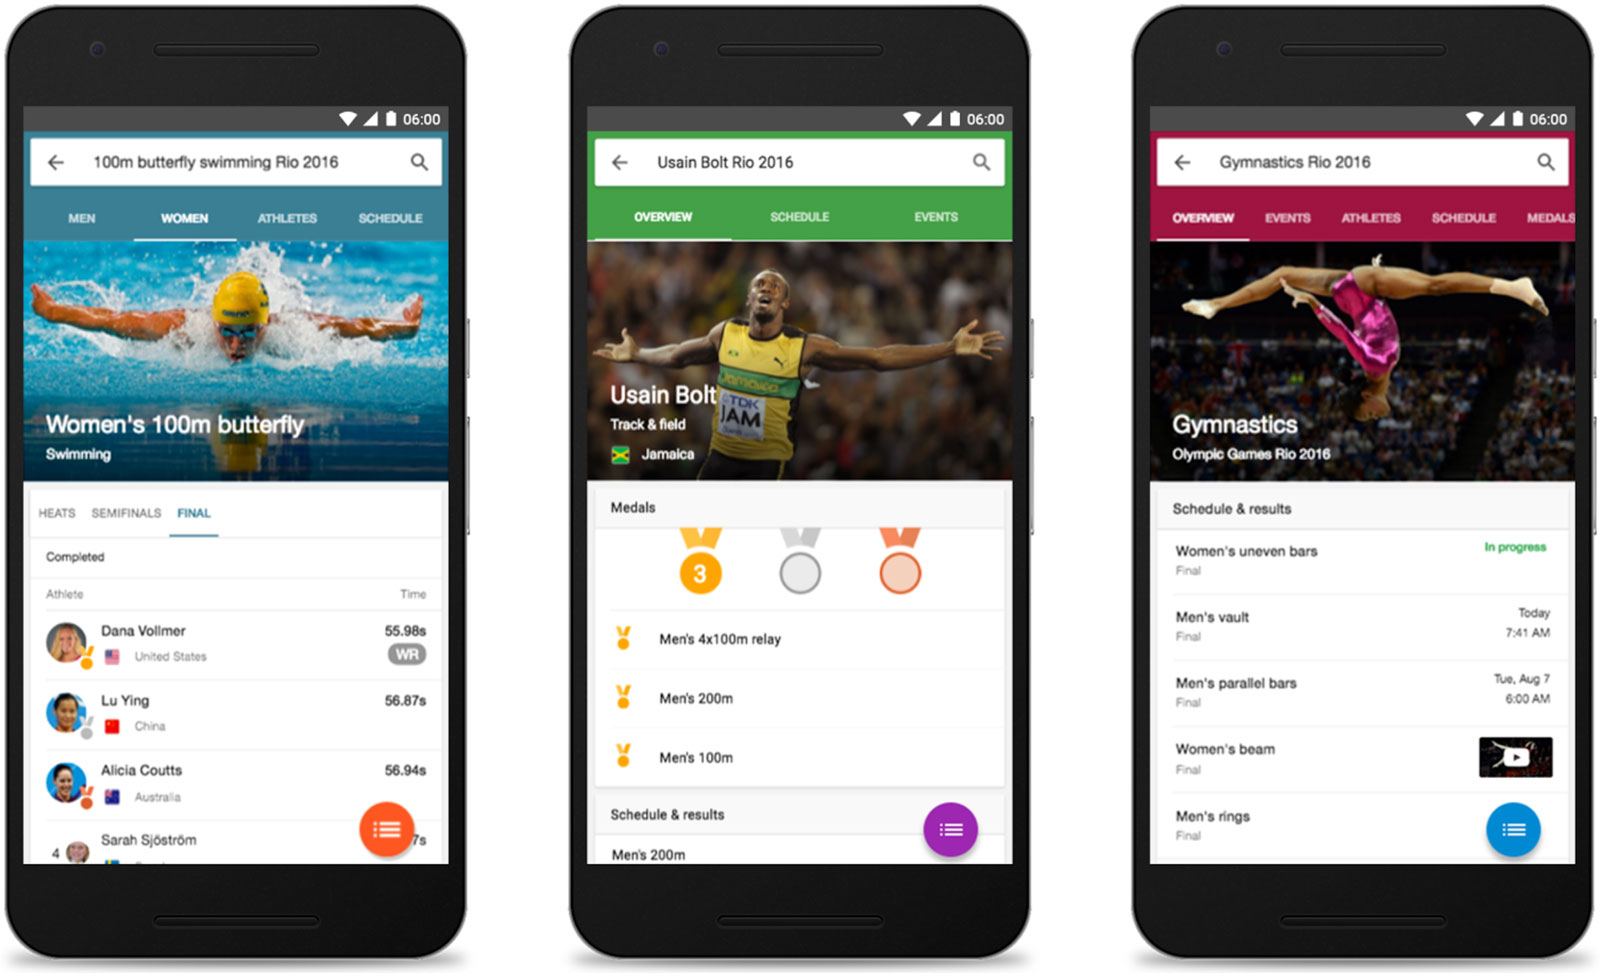 Google's search info for the 2016 Rio Olympic games